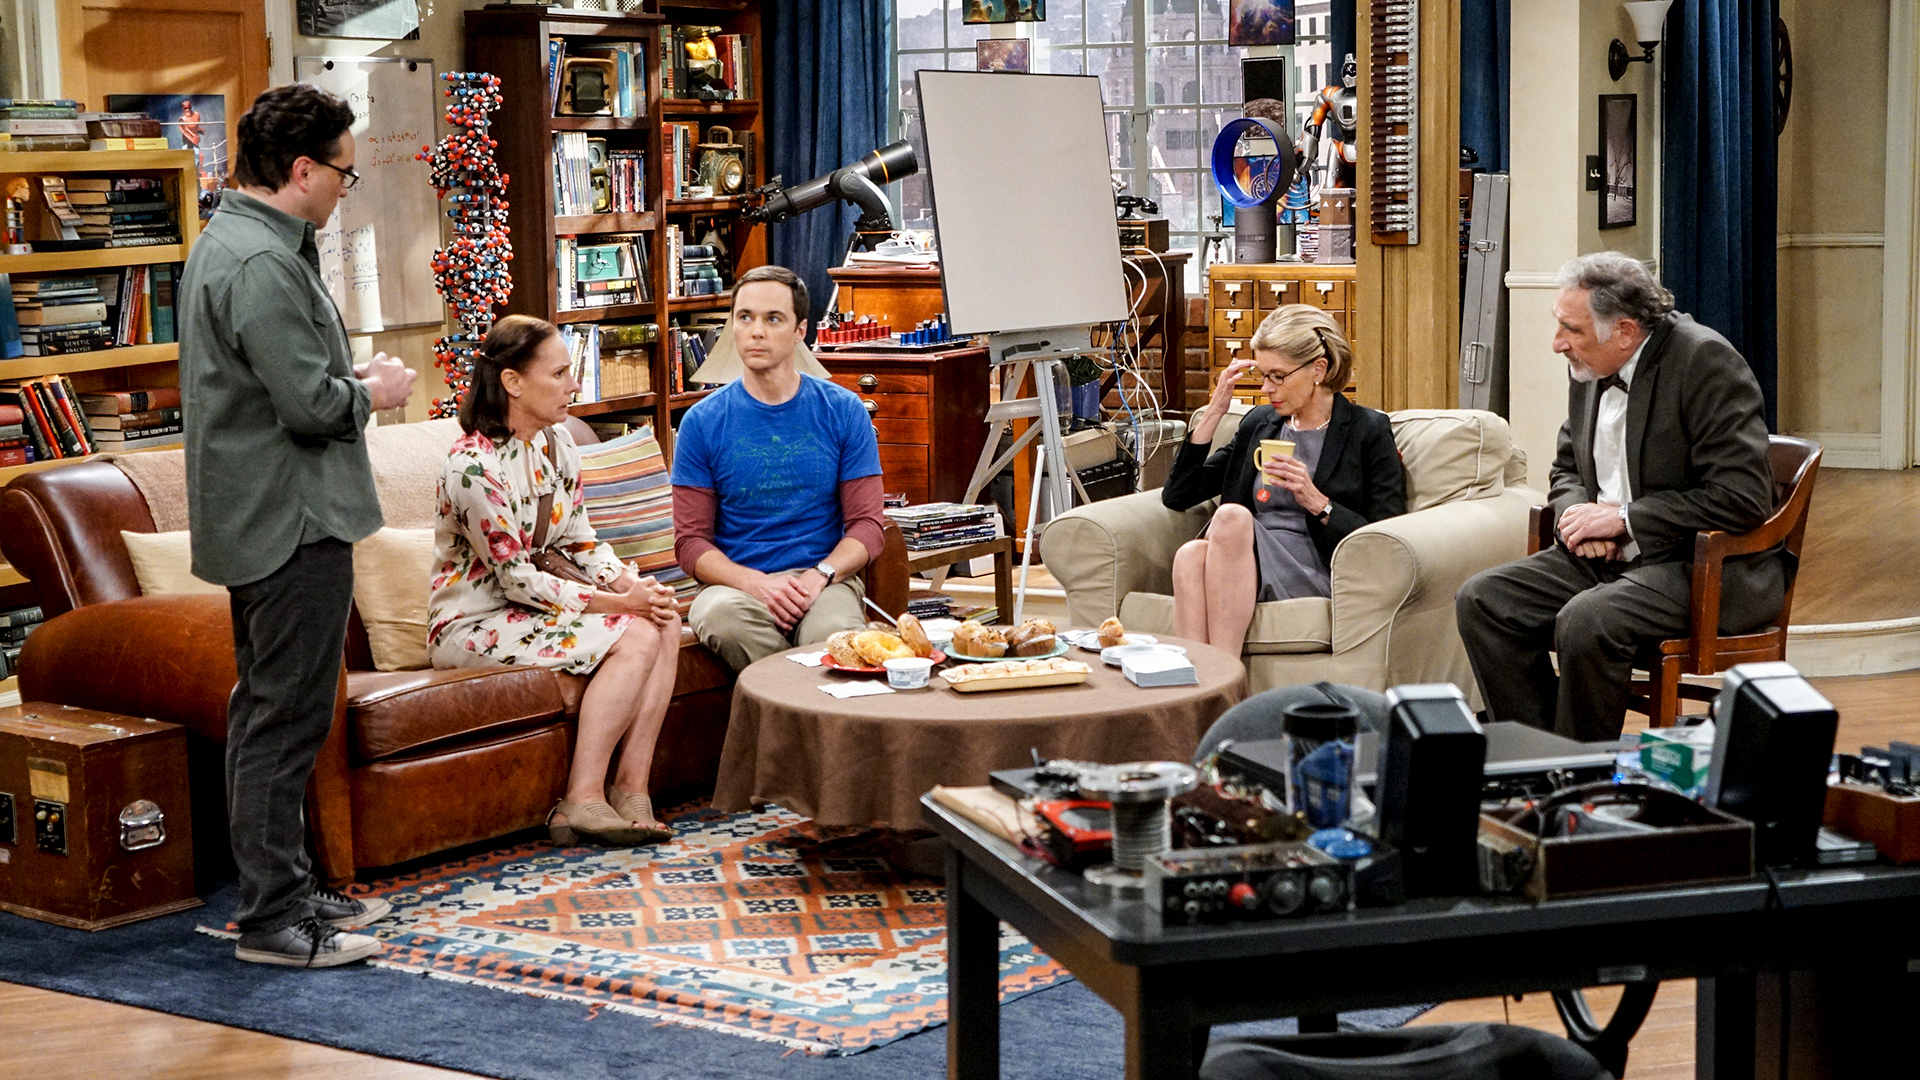 Family ties unravel when Sheldon and Leonard's parents reunite after an eventful evening.